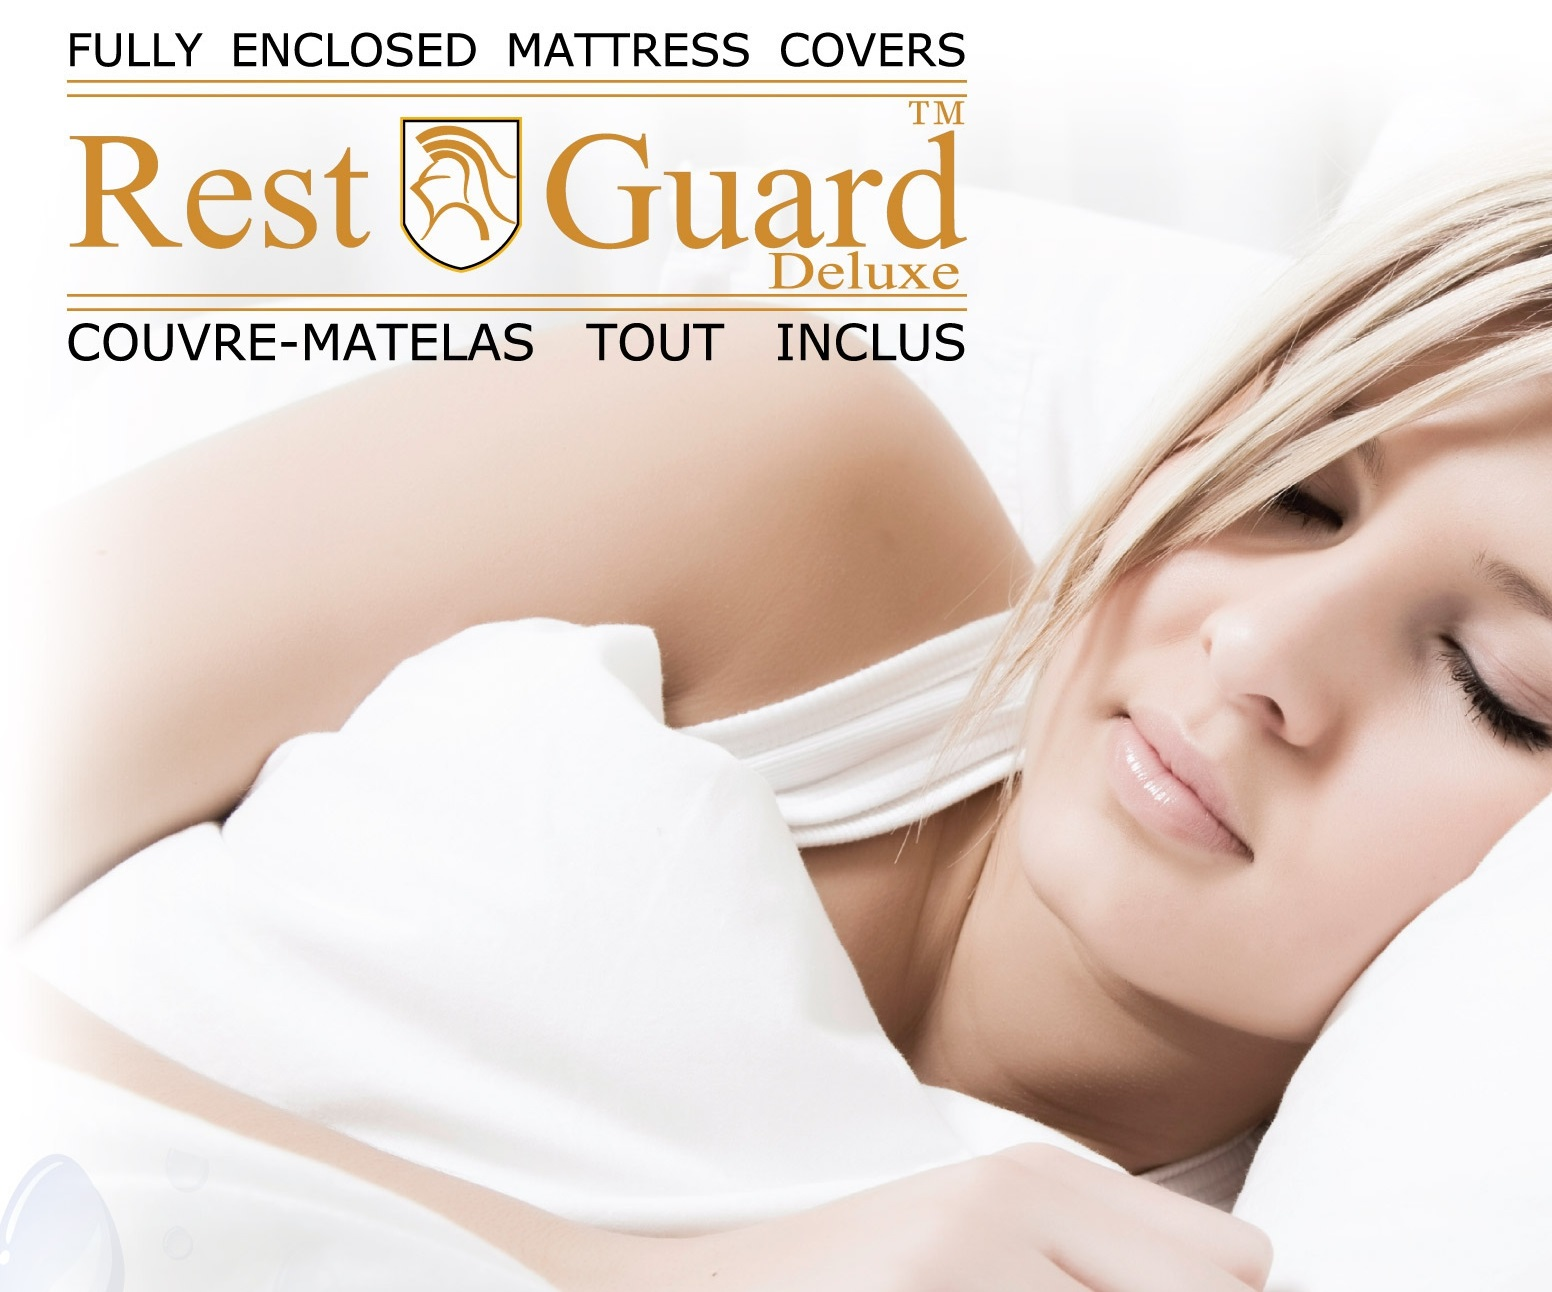 RestGuard Fully Encased Mattress Cover Double Size